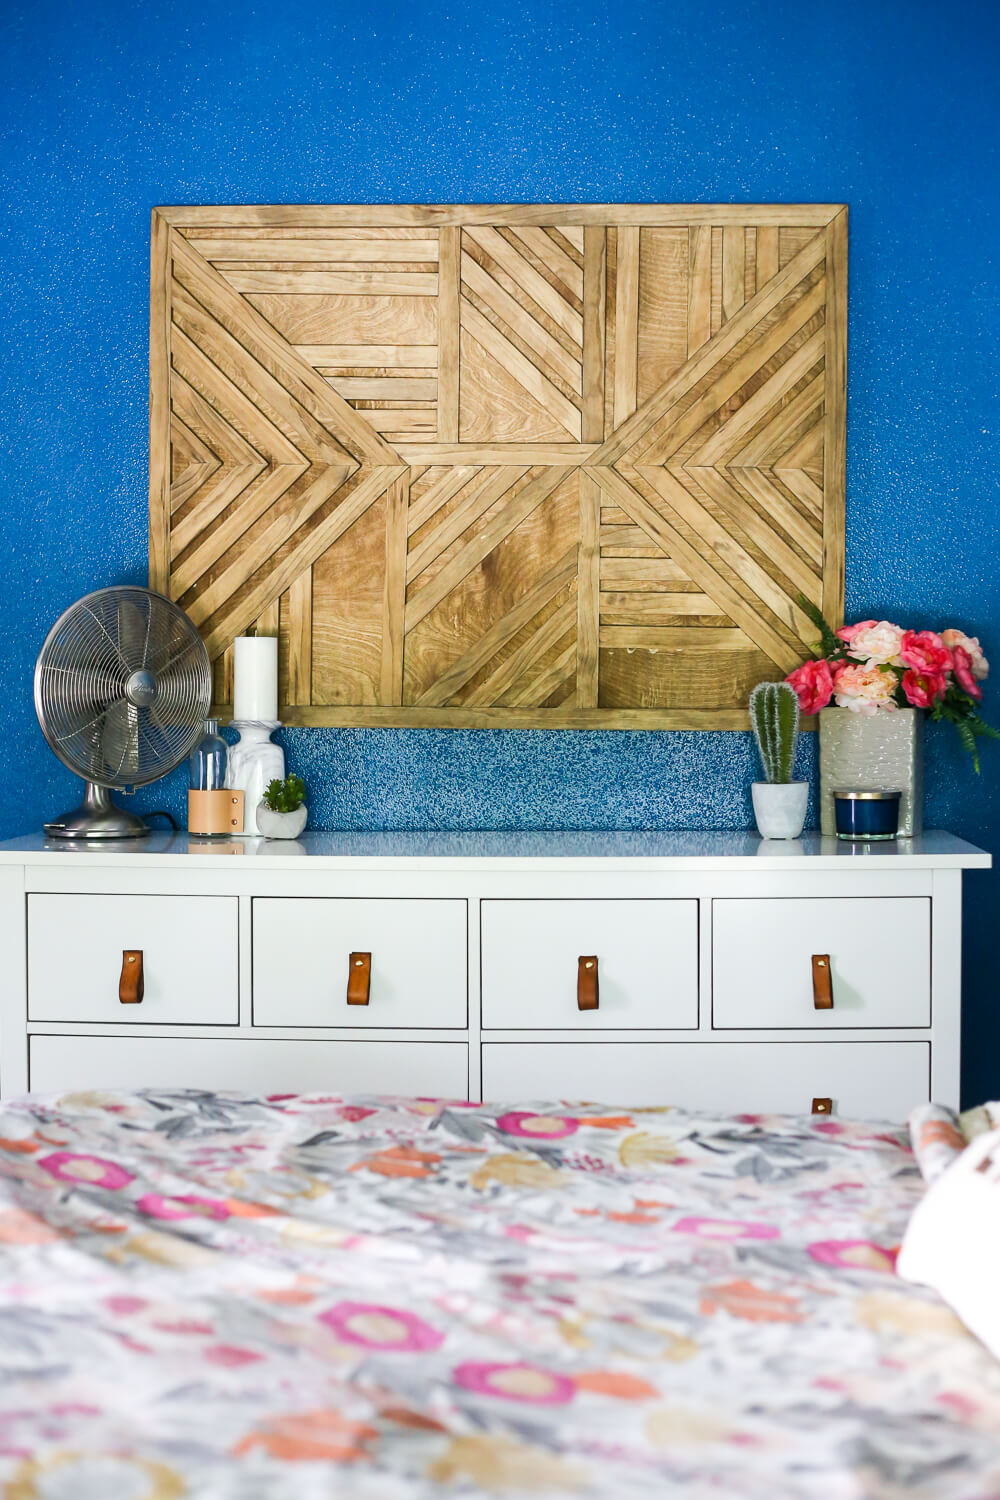 diy-wood-wall-art-12-of-7.jpg